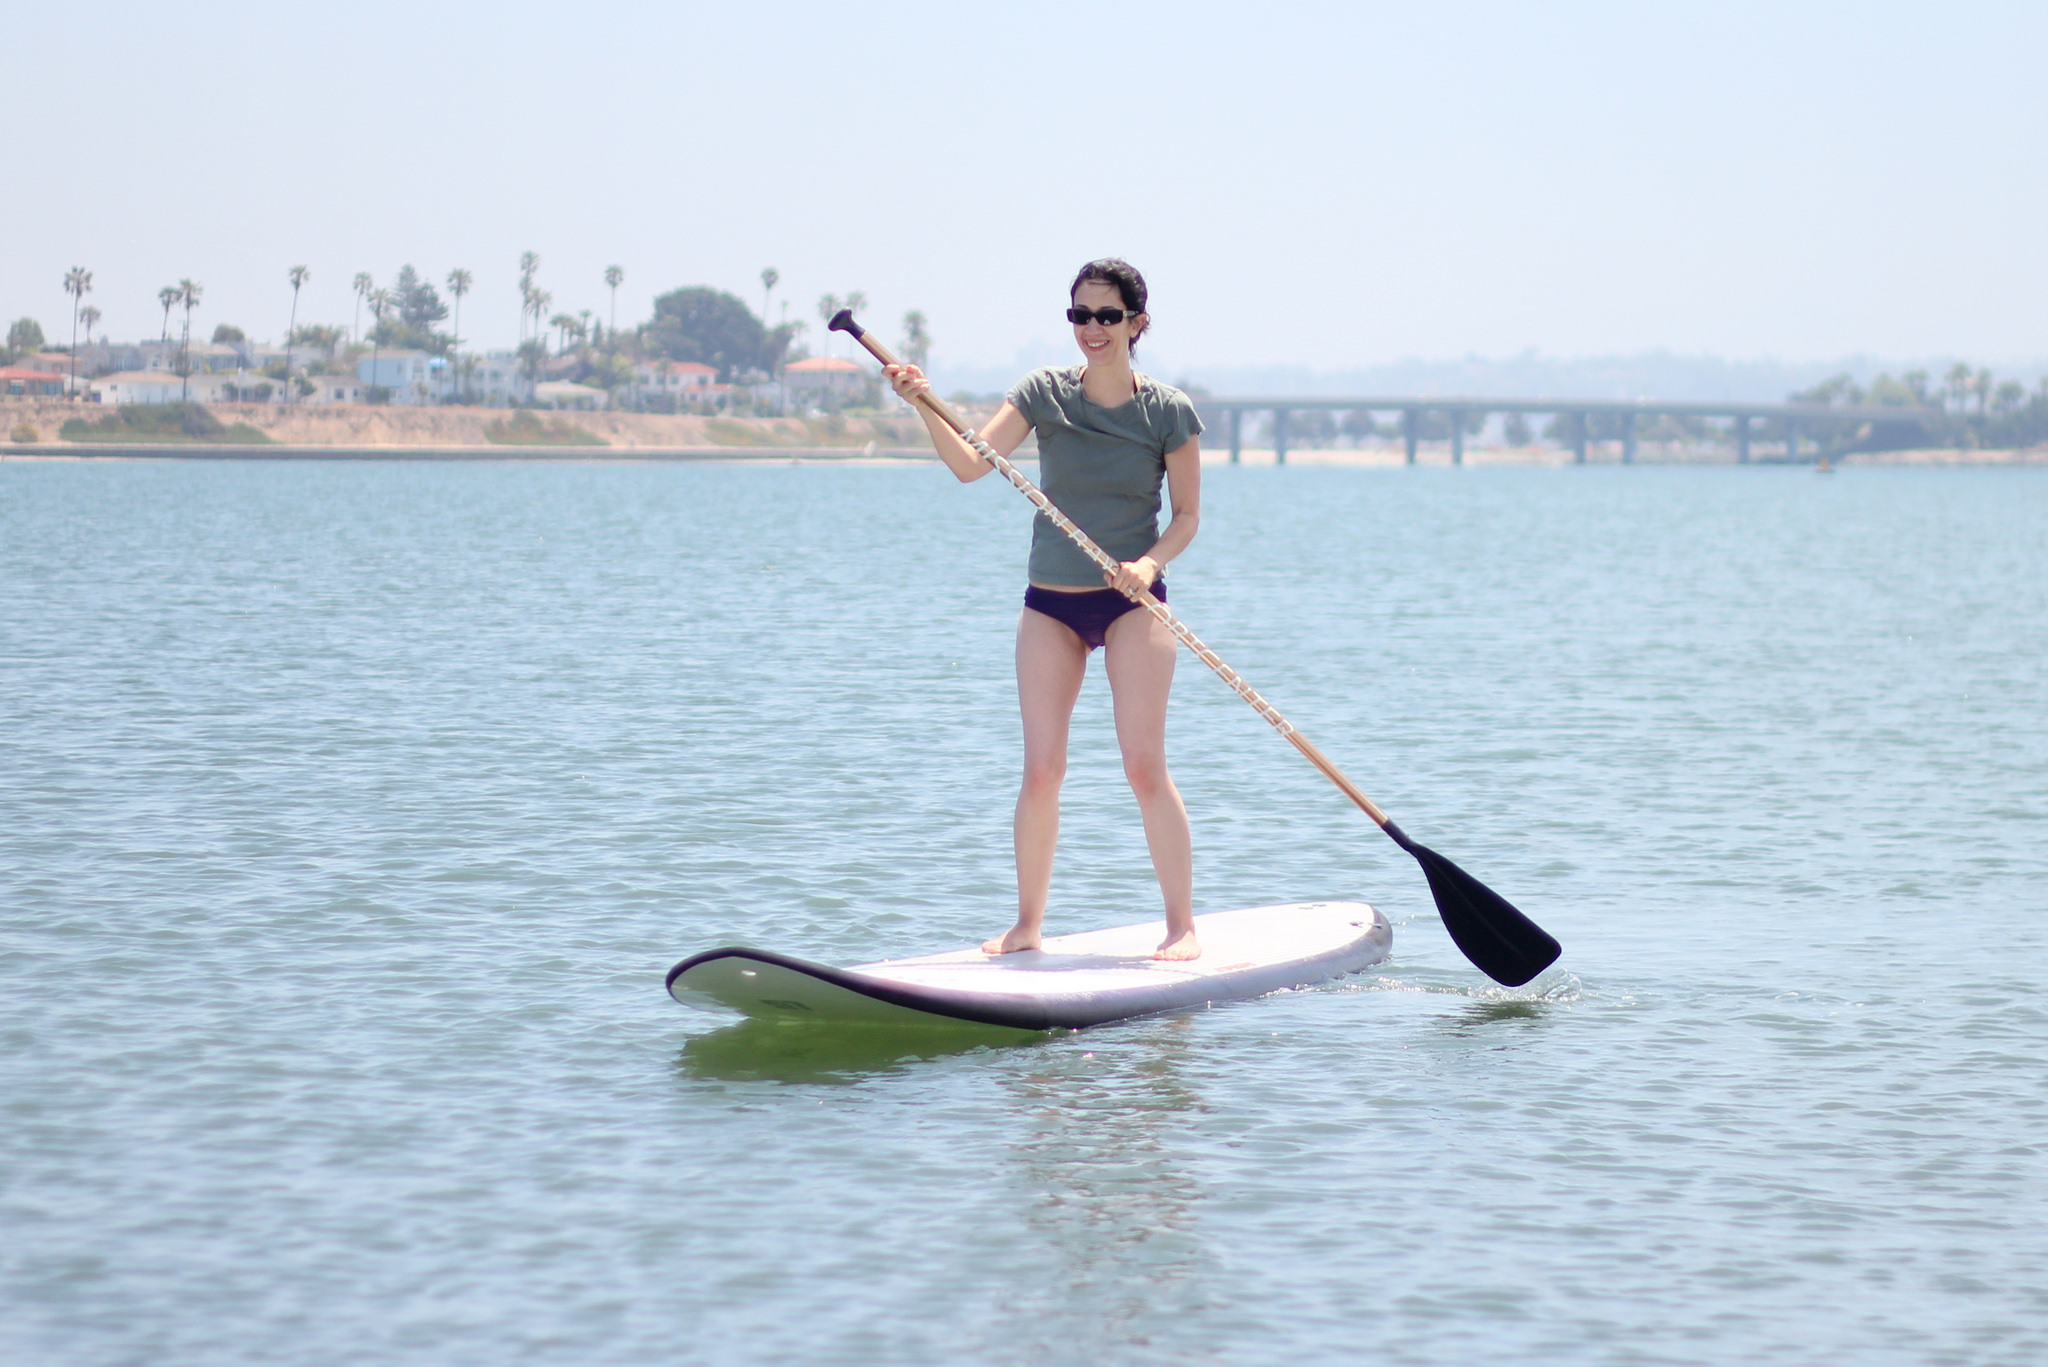 BLICK_9_Unforgettable_Places_To_Go_Paddleboarding_In_The_Bay_Area_PHOTO9